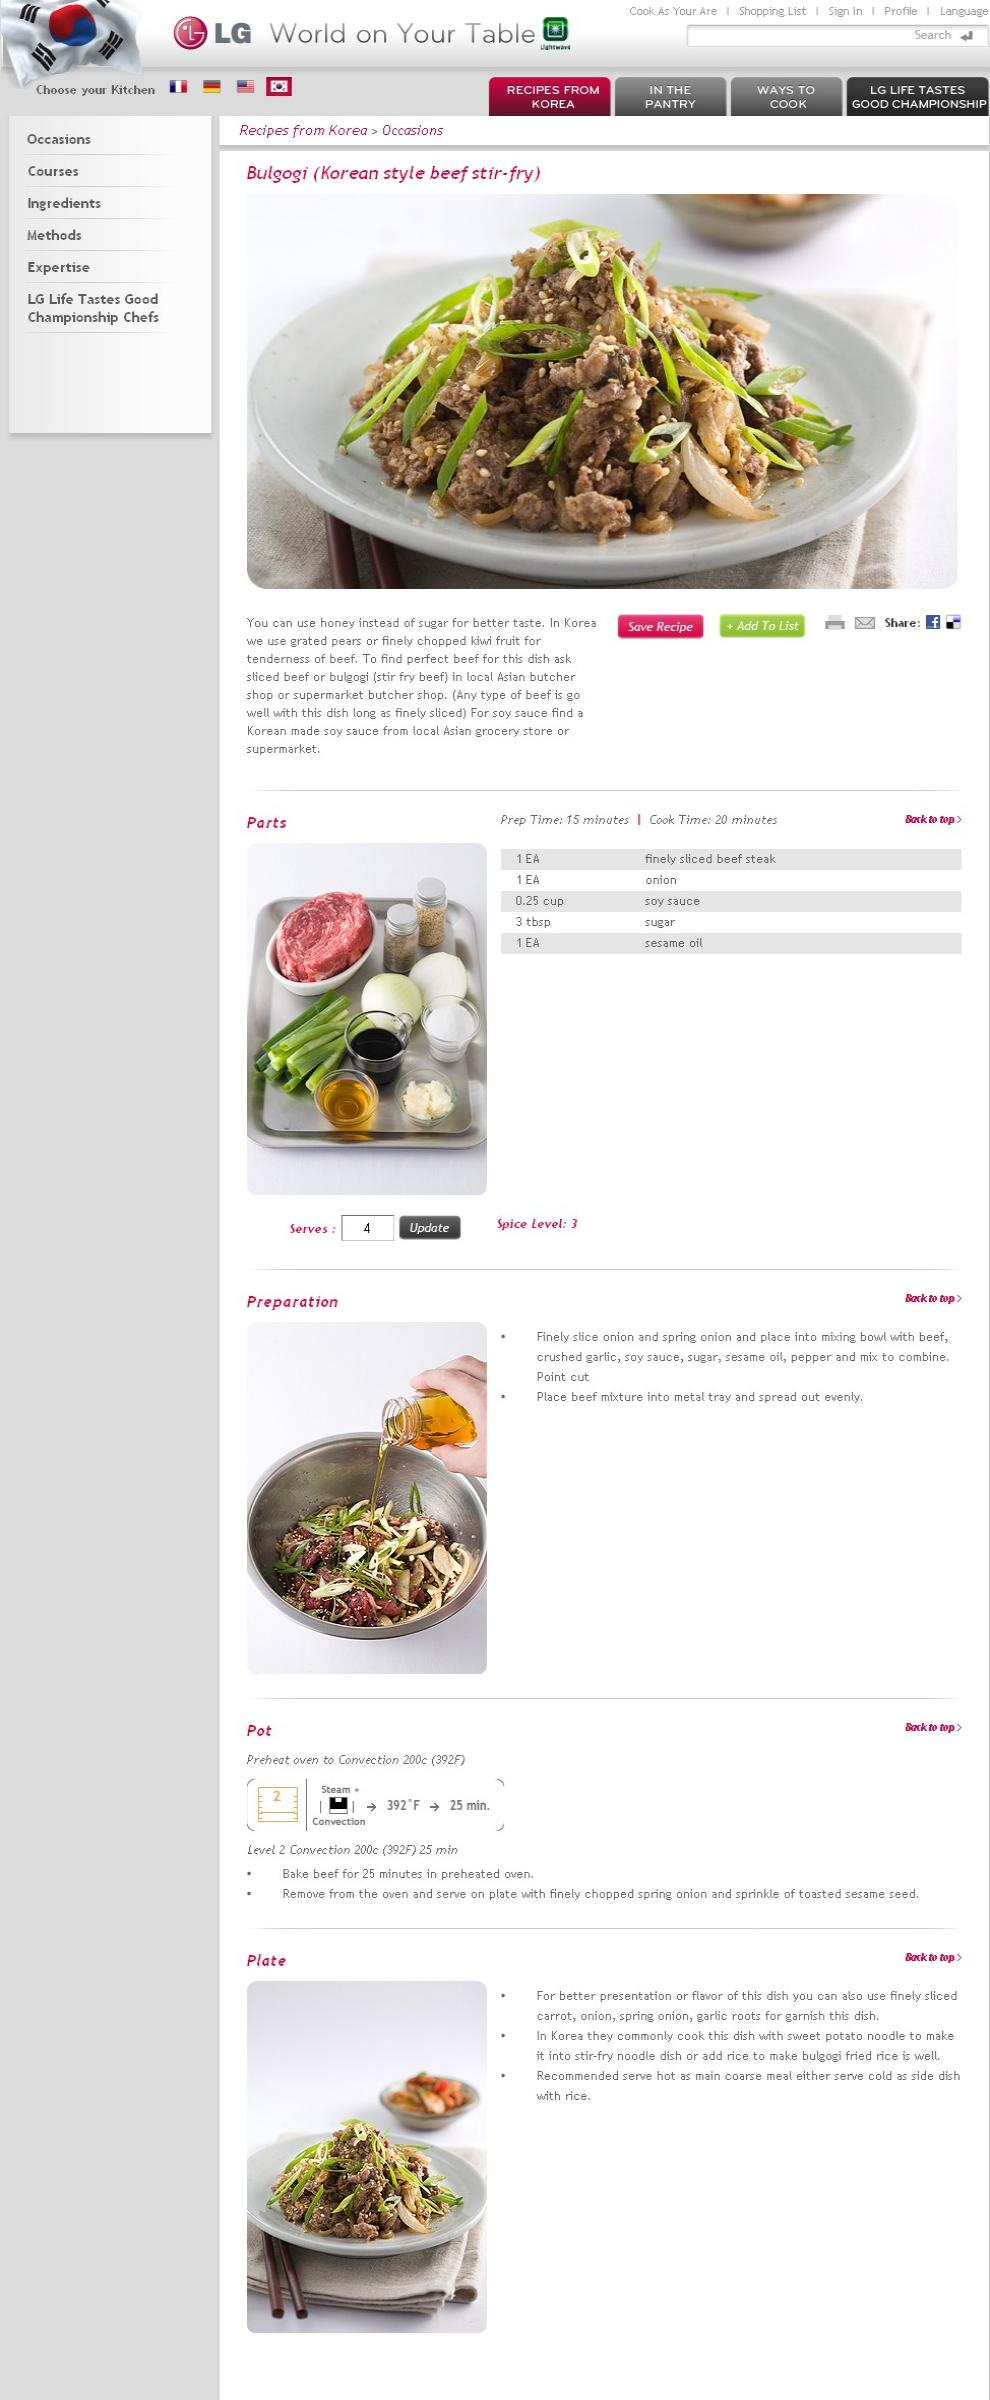 Screenshot of LG's online cooking portal 'recipes from Korea' section, showing the recipe for popular Korean dish Bulgogi and how to prepare it